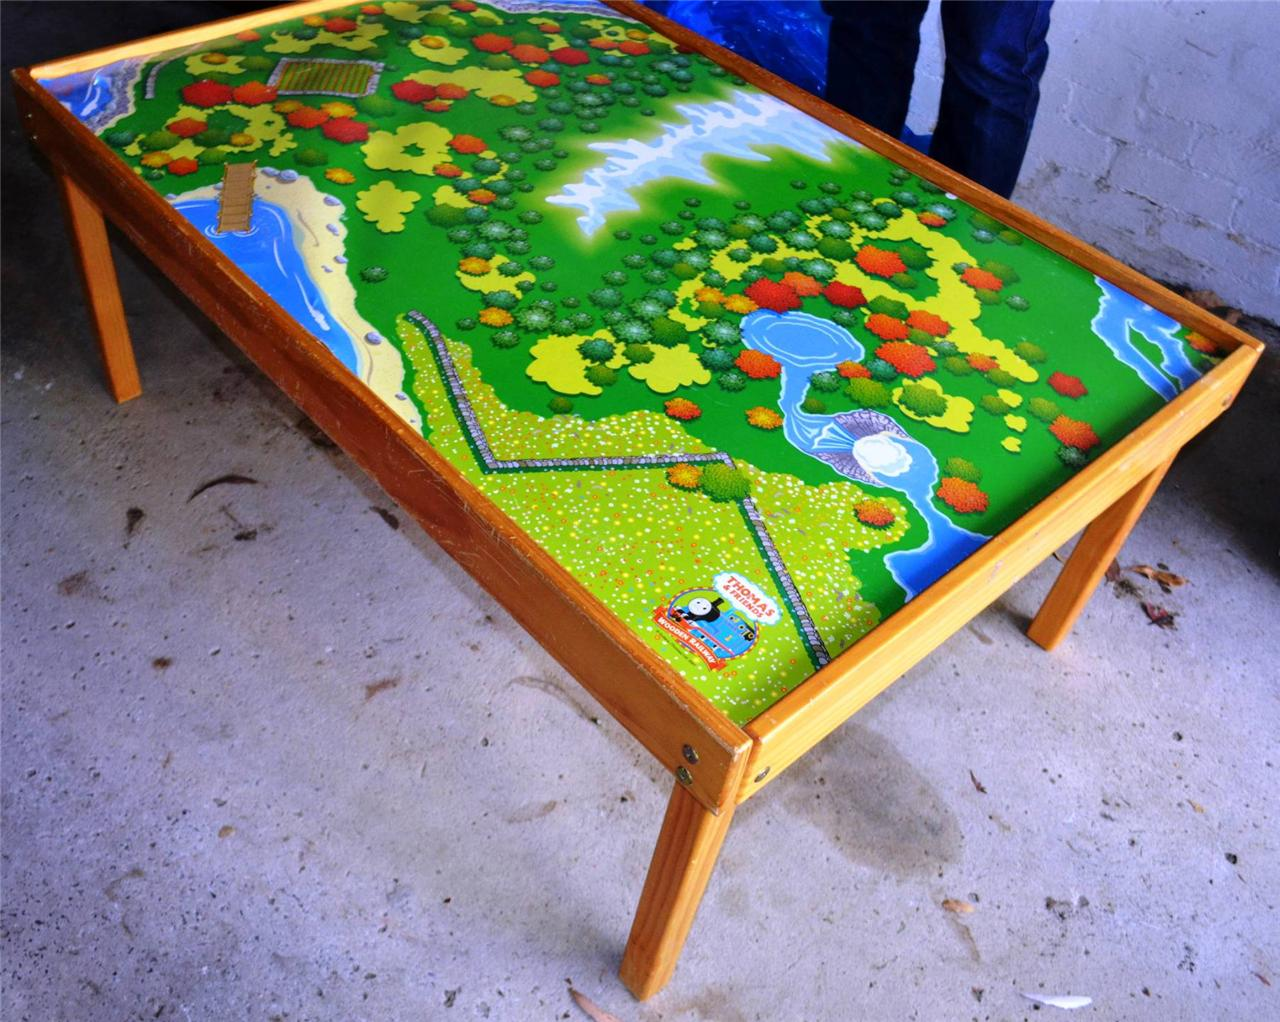 thomas the tank engine desk and chair resistance exercise system train table lookup beforebuying